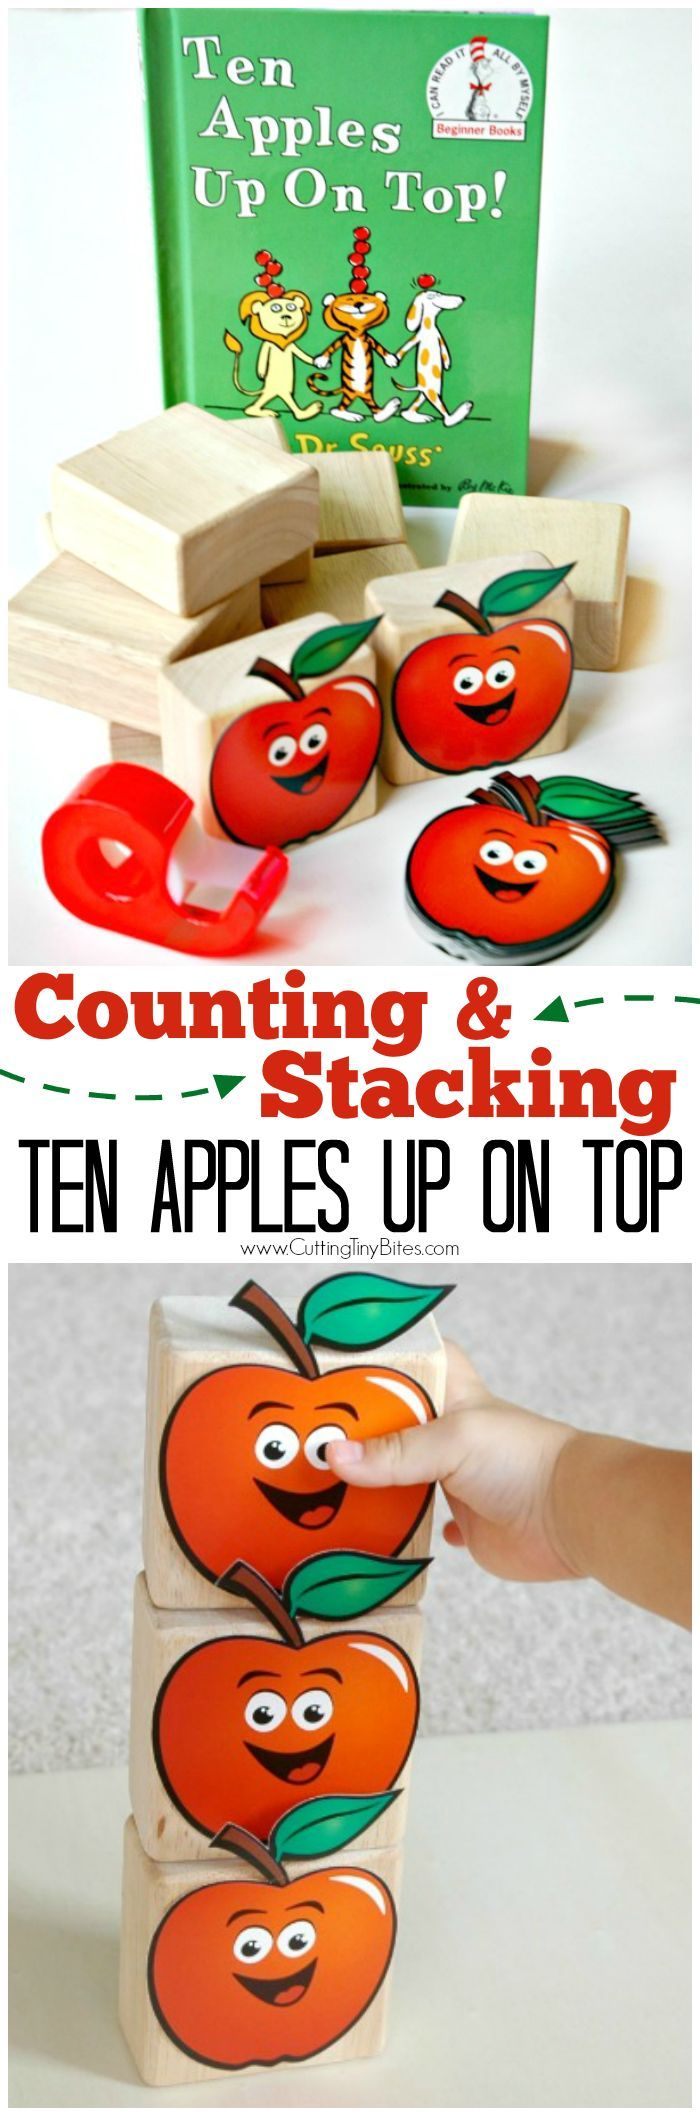 Ten Apples Up On Top Counting and Stacking.  Simple Dr. Seuss book extension and math activity for toddlers and preschoolers!